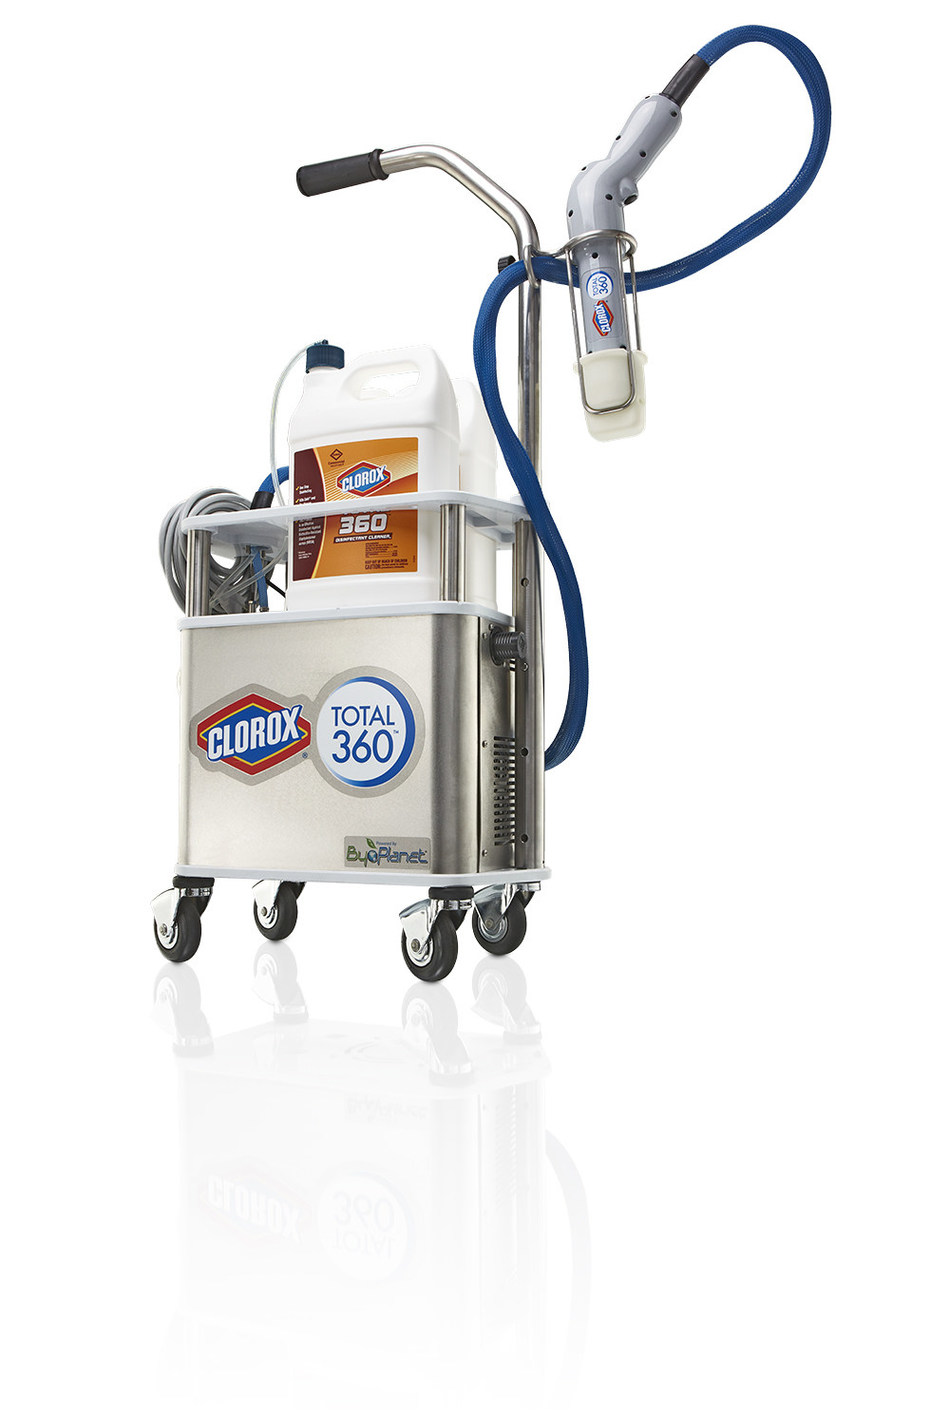 The Clorox® Total 360® System